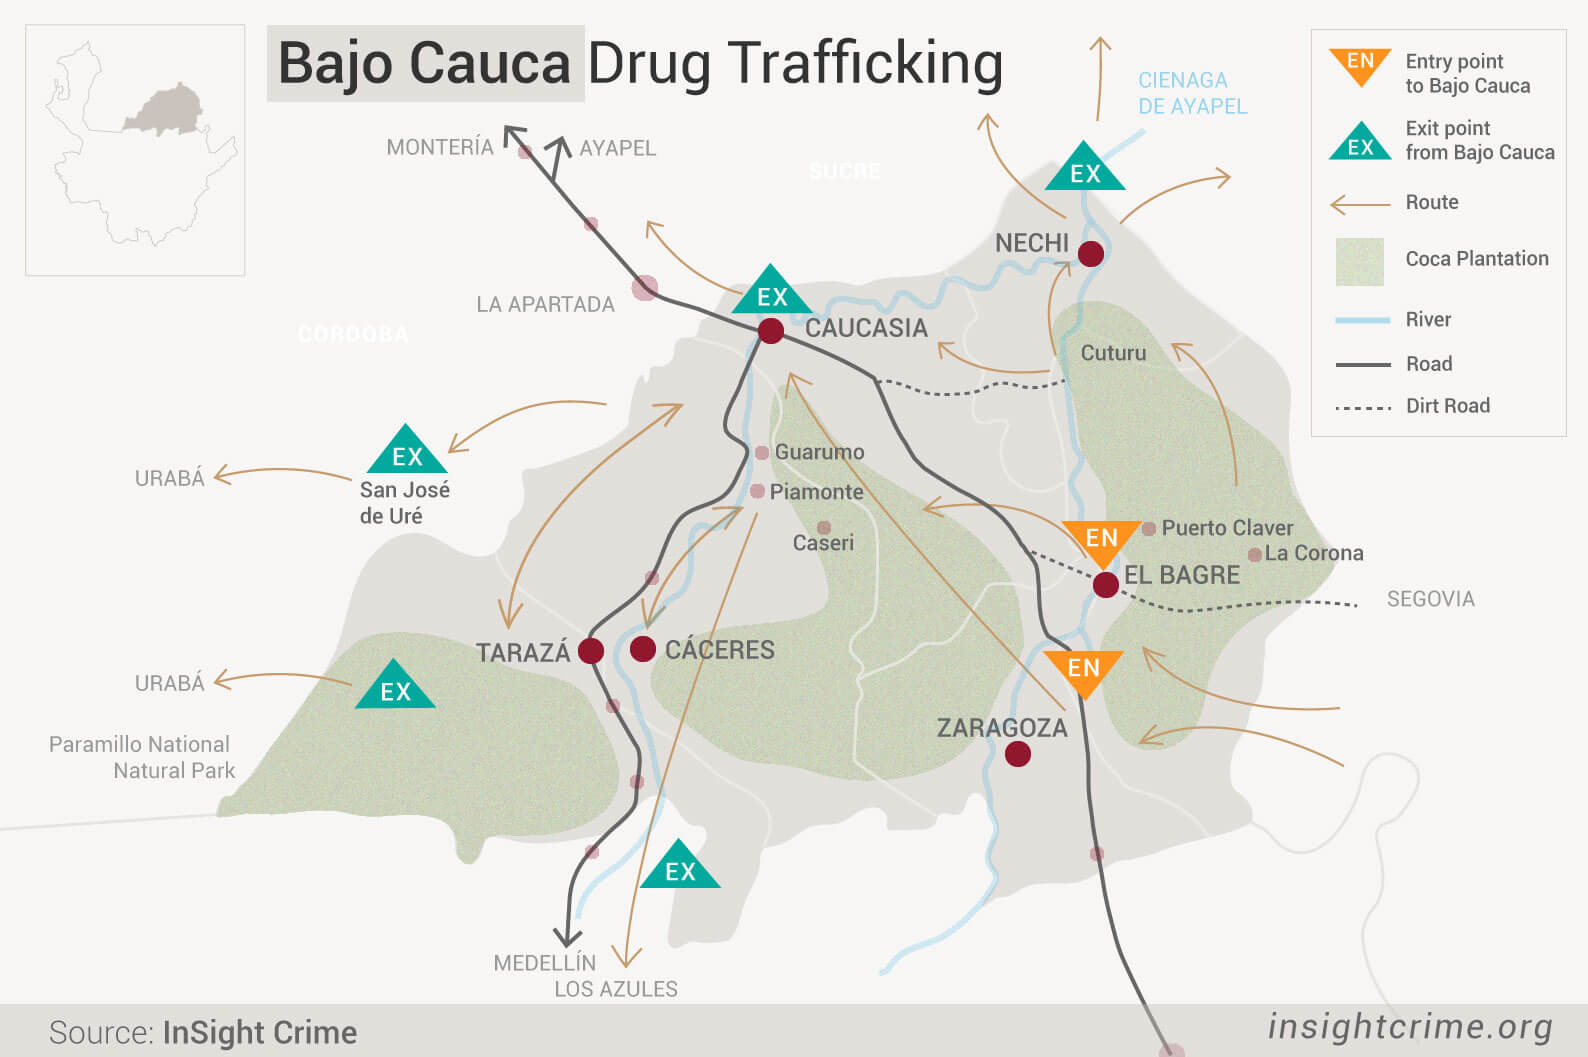 BAJO-CAUCA--DRUG-TRAFF-MAP